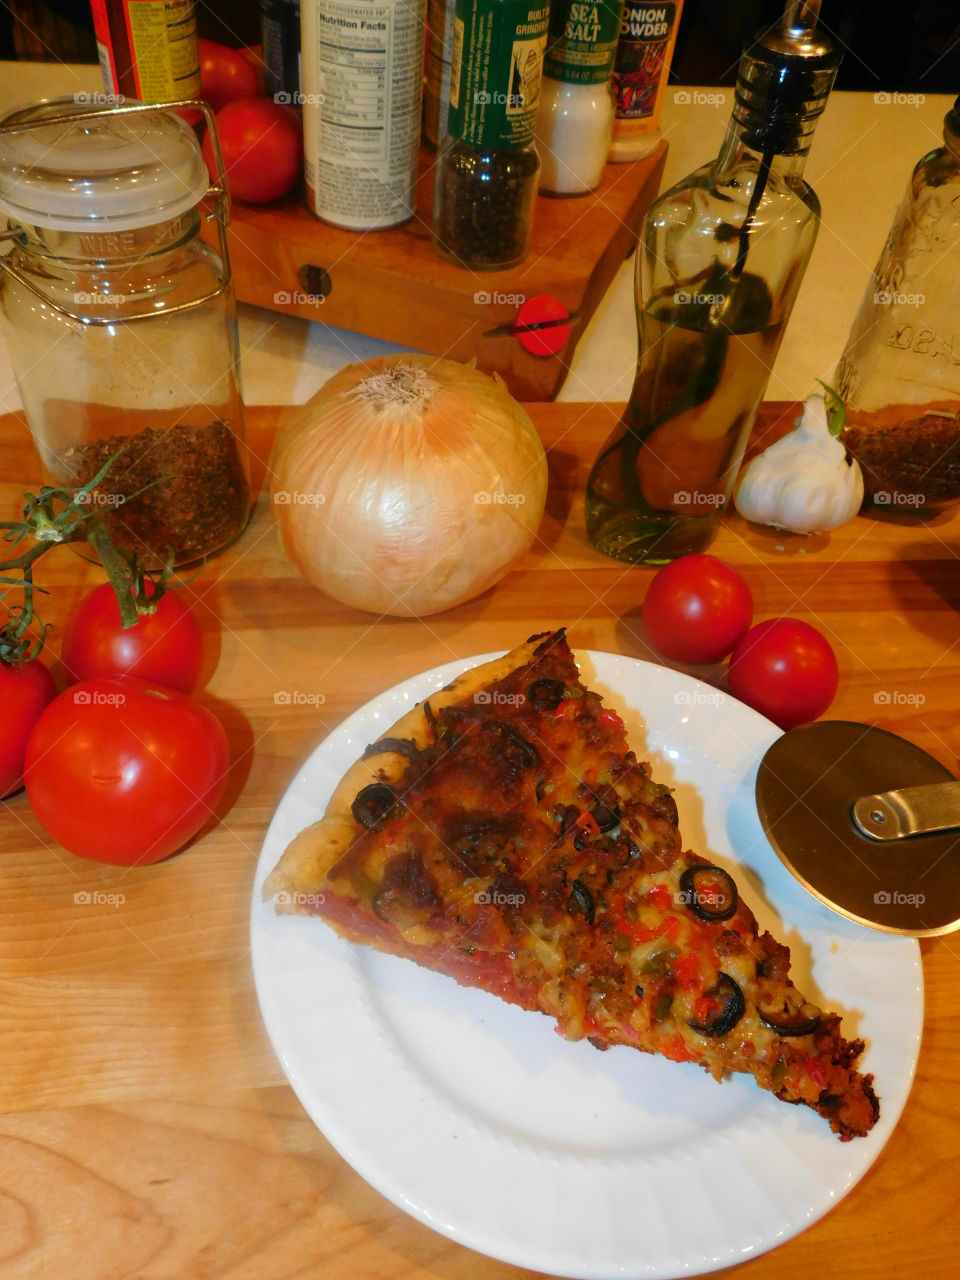 Delicious and nutritious homemade pizza with fresh, colorful vegetables, meats and a variety of spices! Grab a slice!